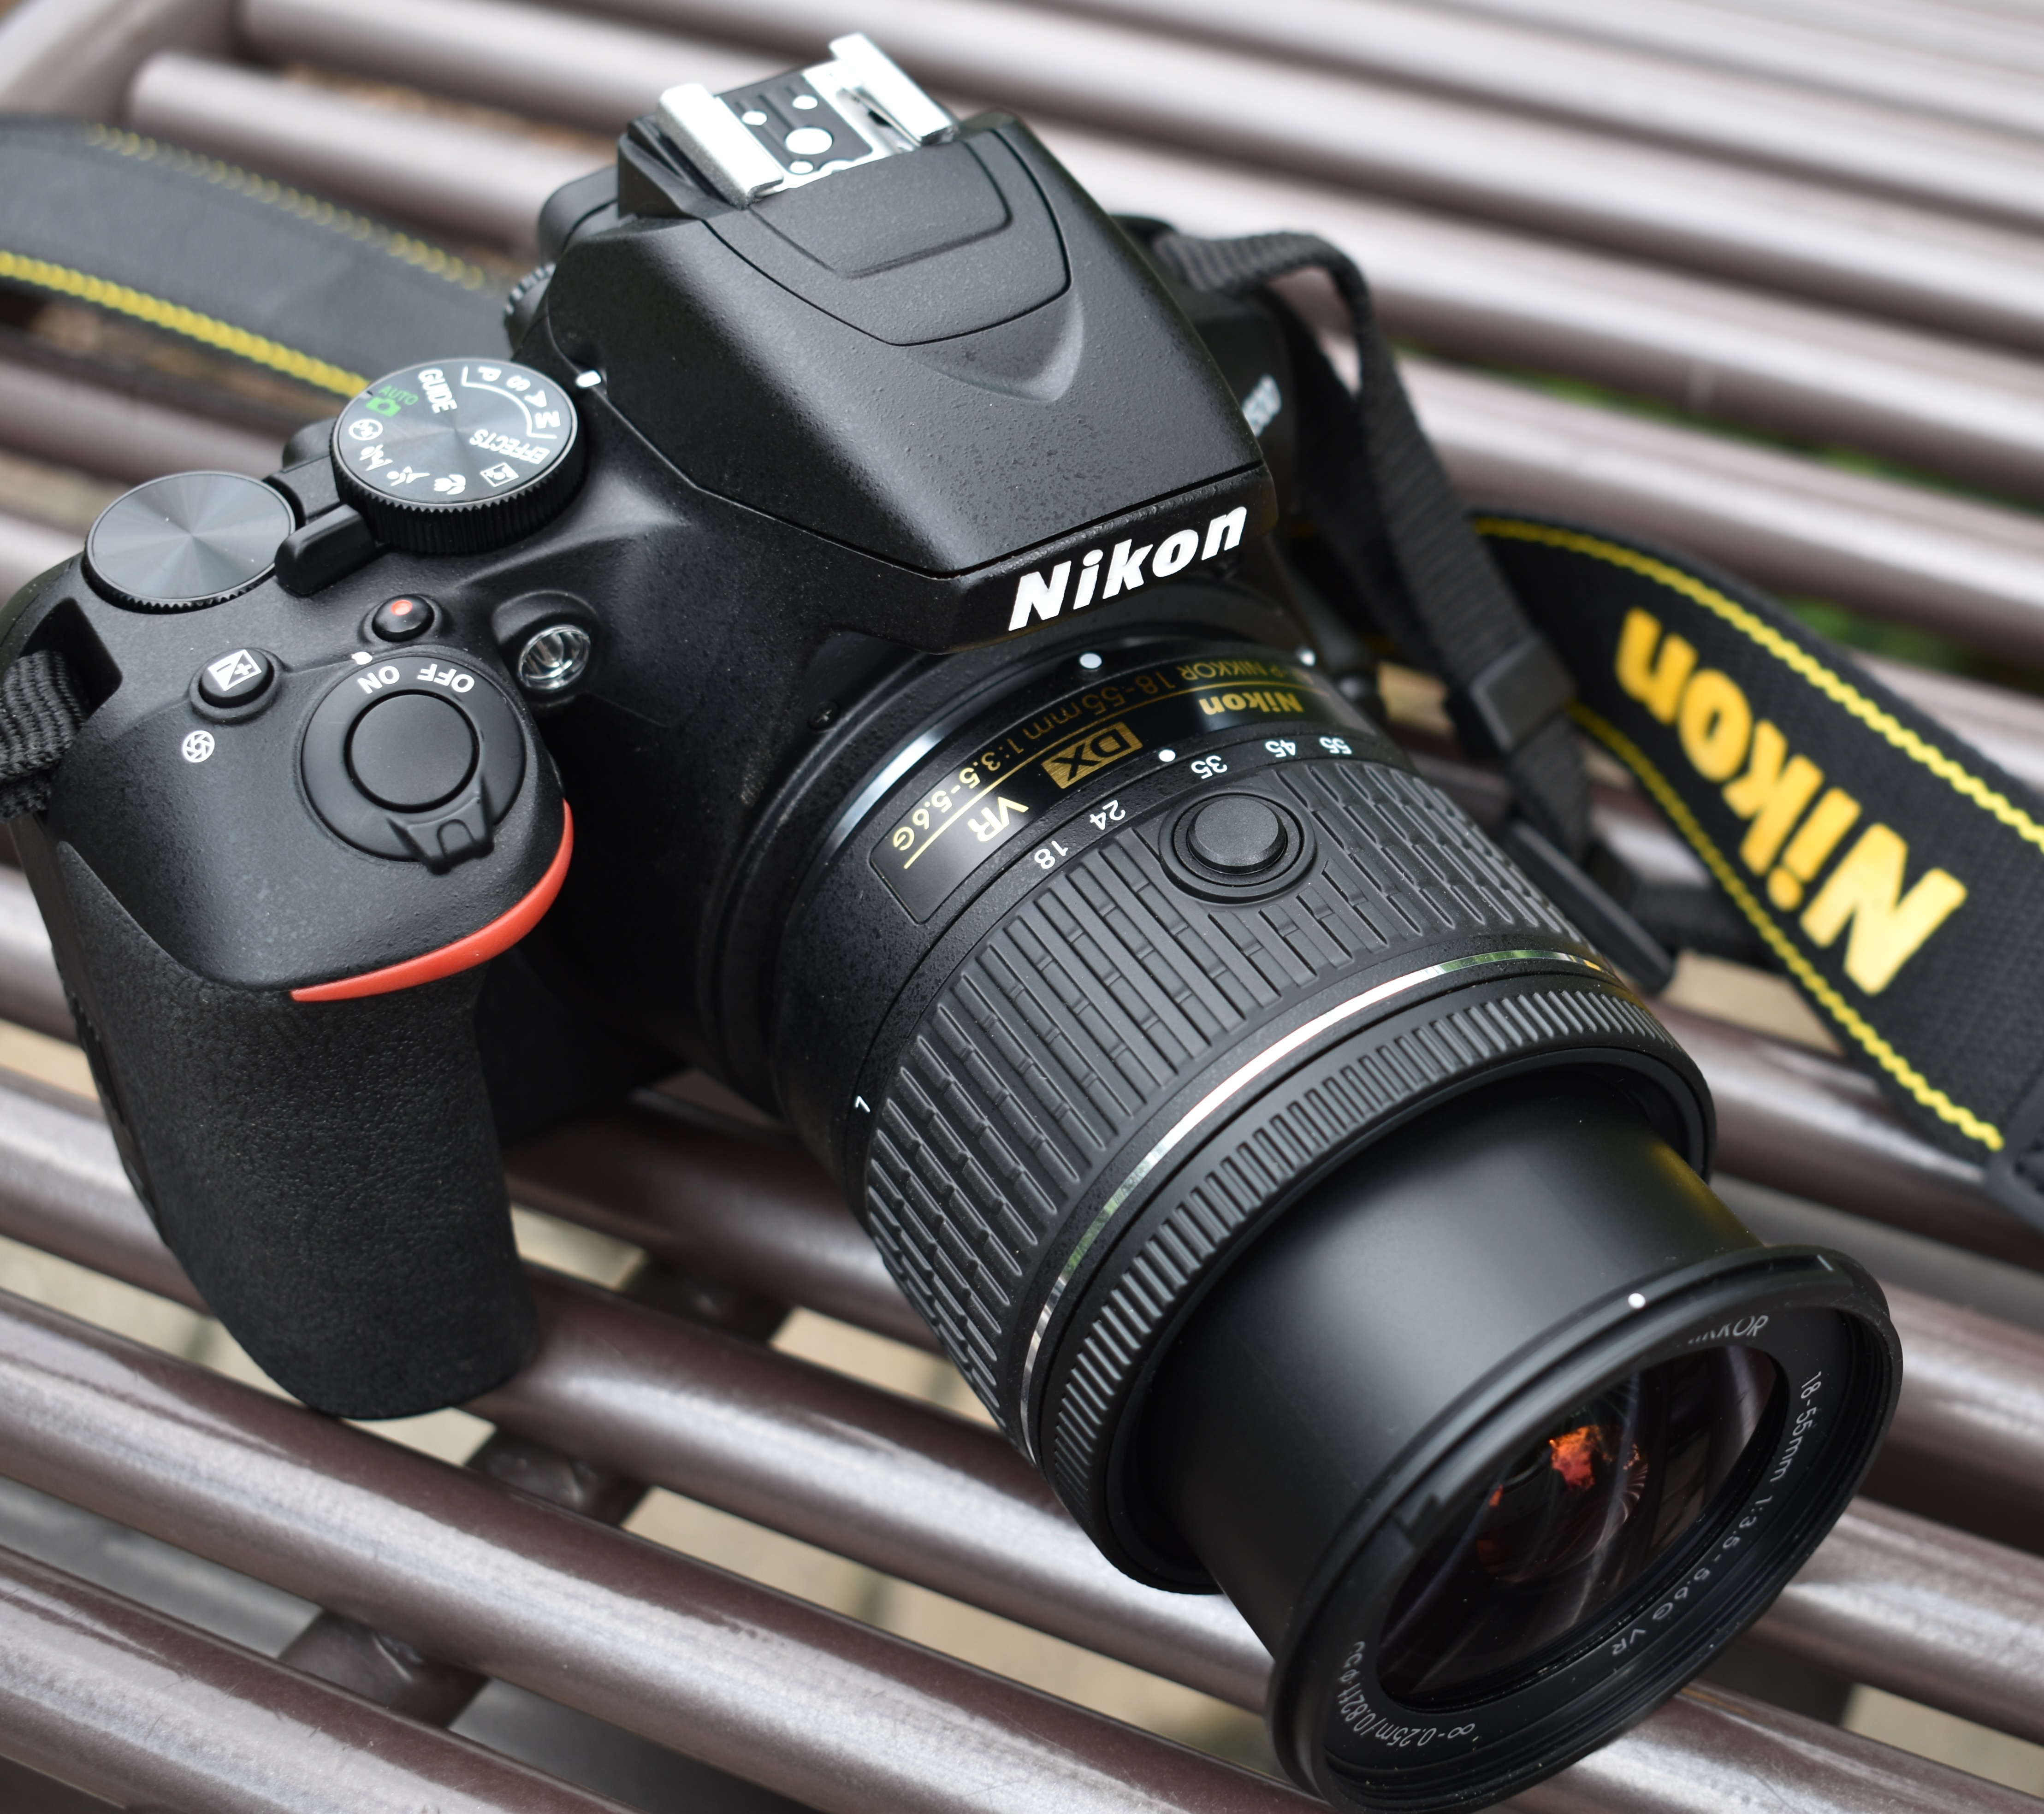 Nikon D3500 top and right view